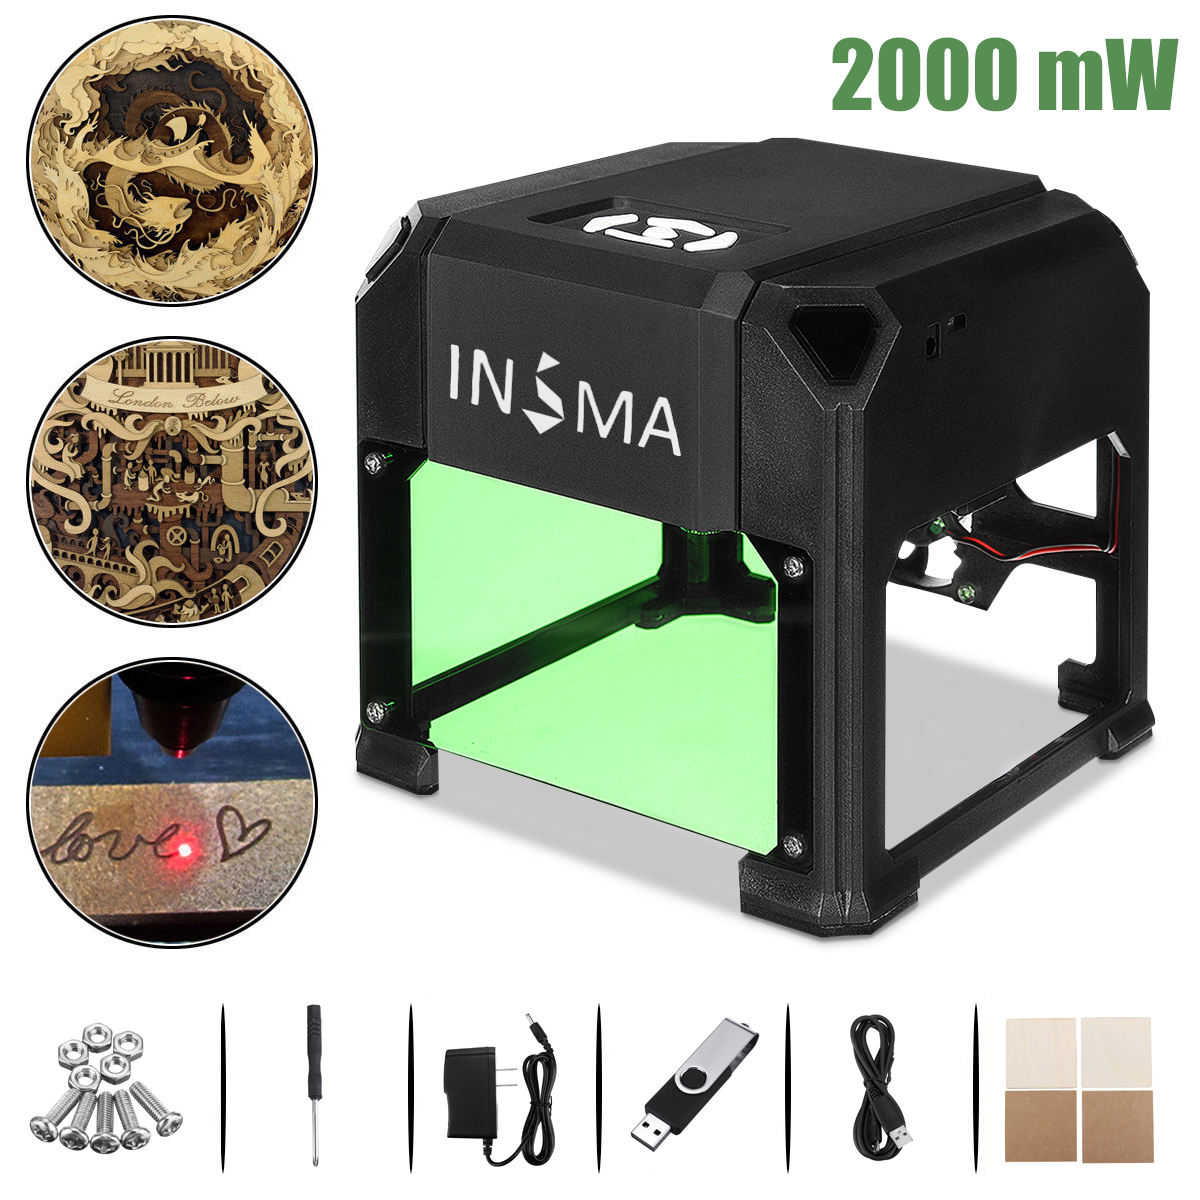 все цены на 2000 mW CNC Laser Engraver DIY Logo Mark Printer Cutter Laser Engraving Machine Woodworking 80x80mm Engraving Range онлайн